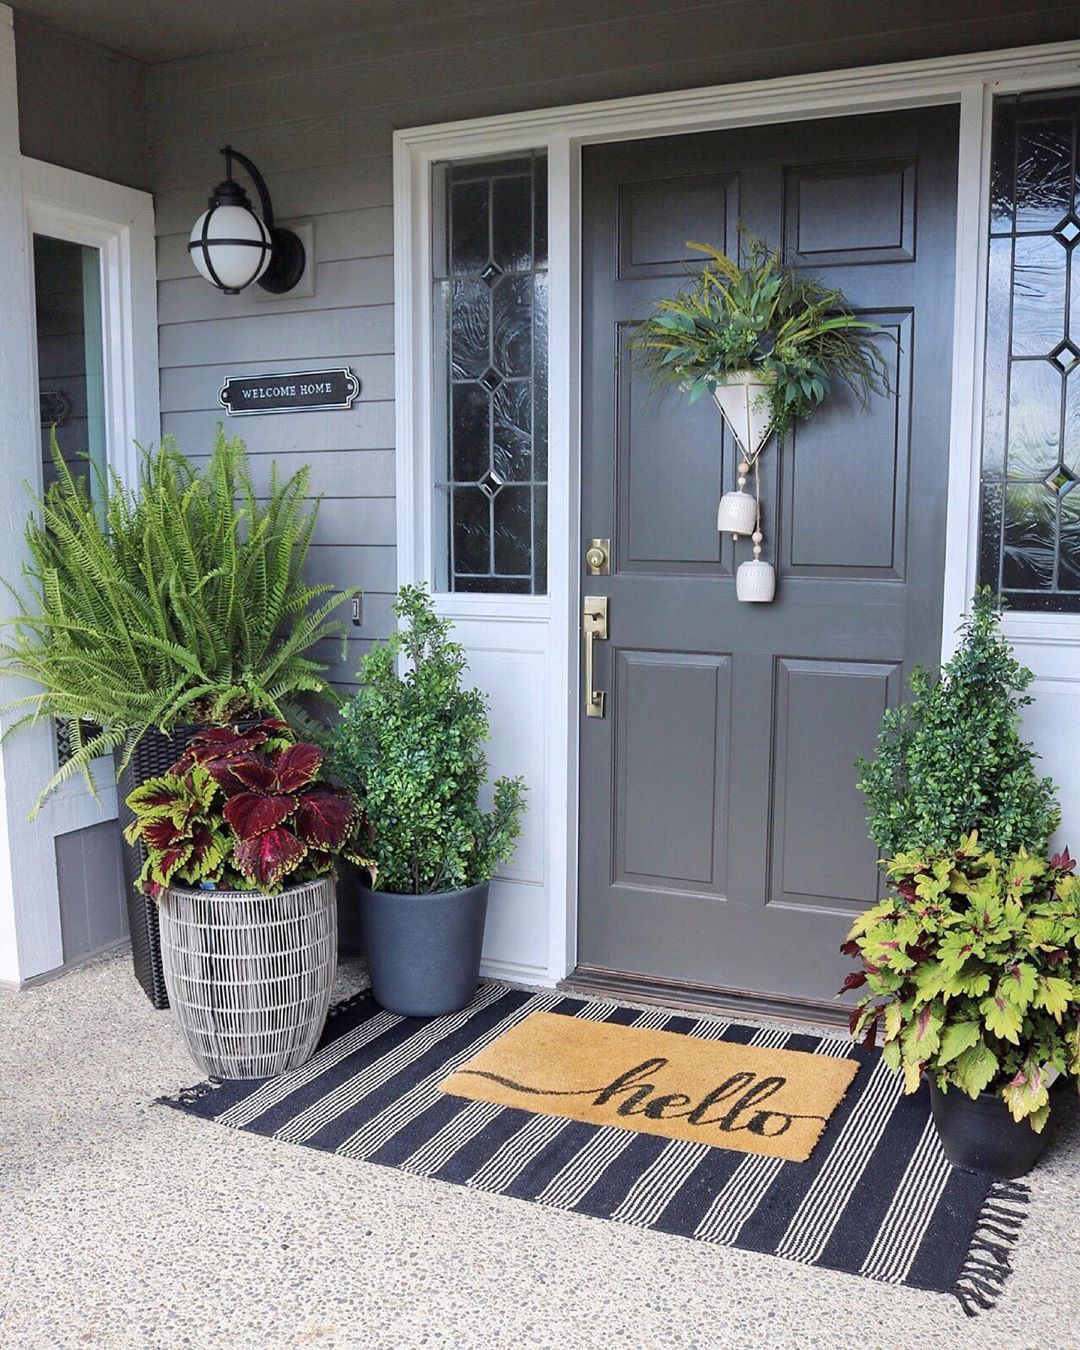 """Julie Nay on Instagram: """"I went to the garden center with a list of flowers I wanted to add to my front porch (thanks for all your great suggestions!), but these…"""" #frontporchideascurbappeal"""